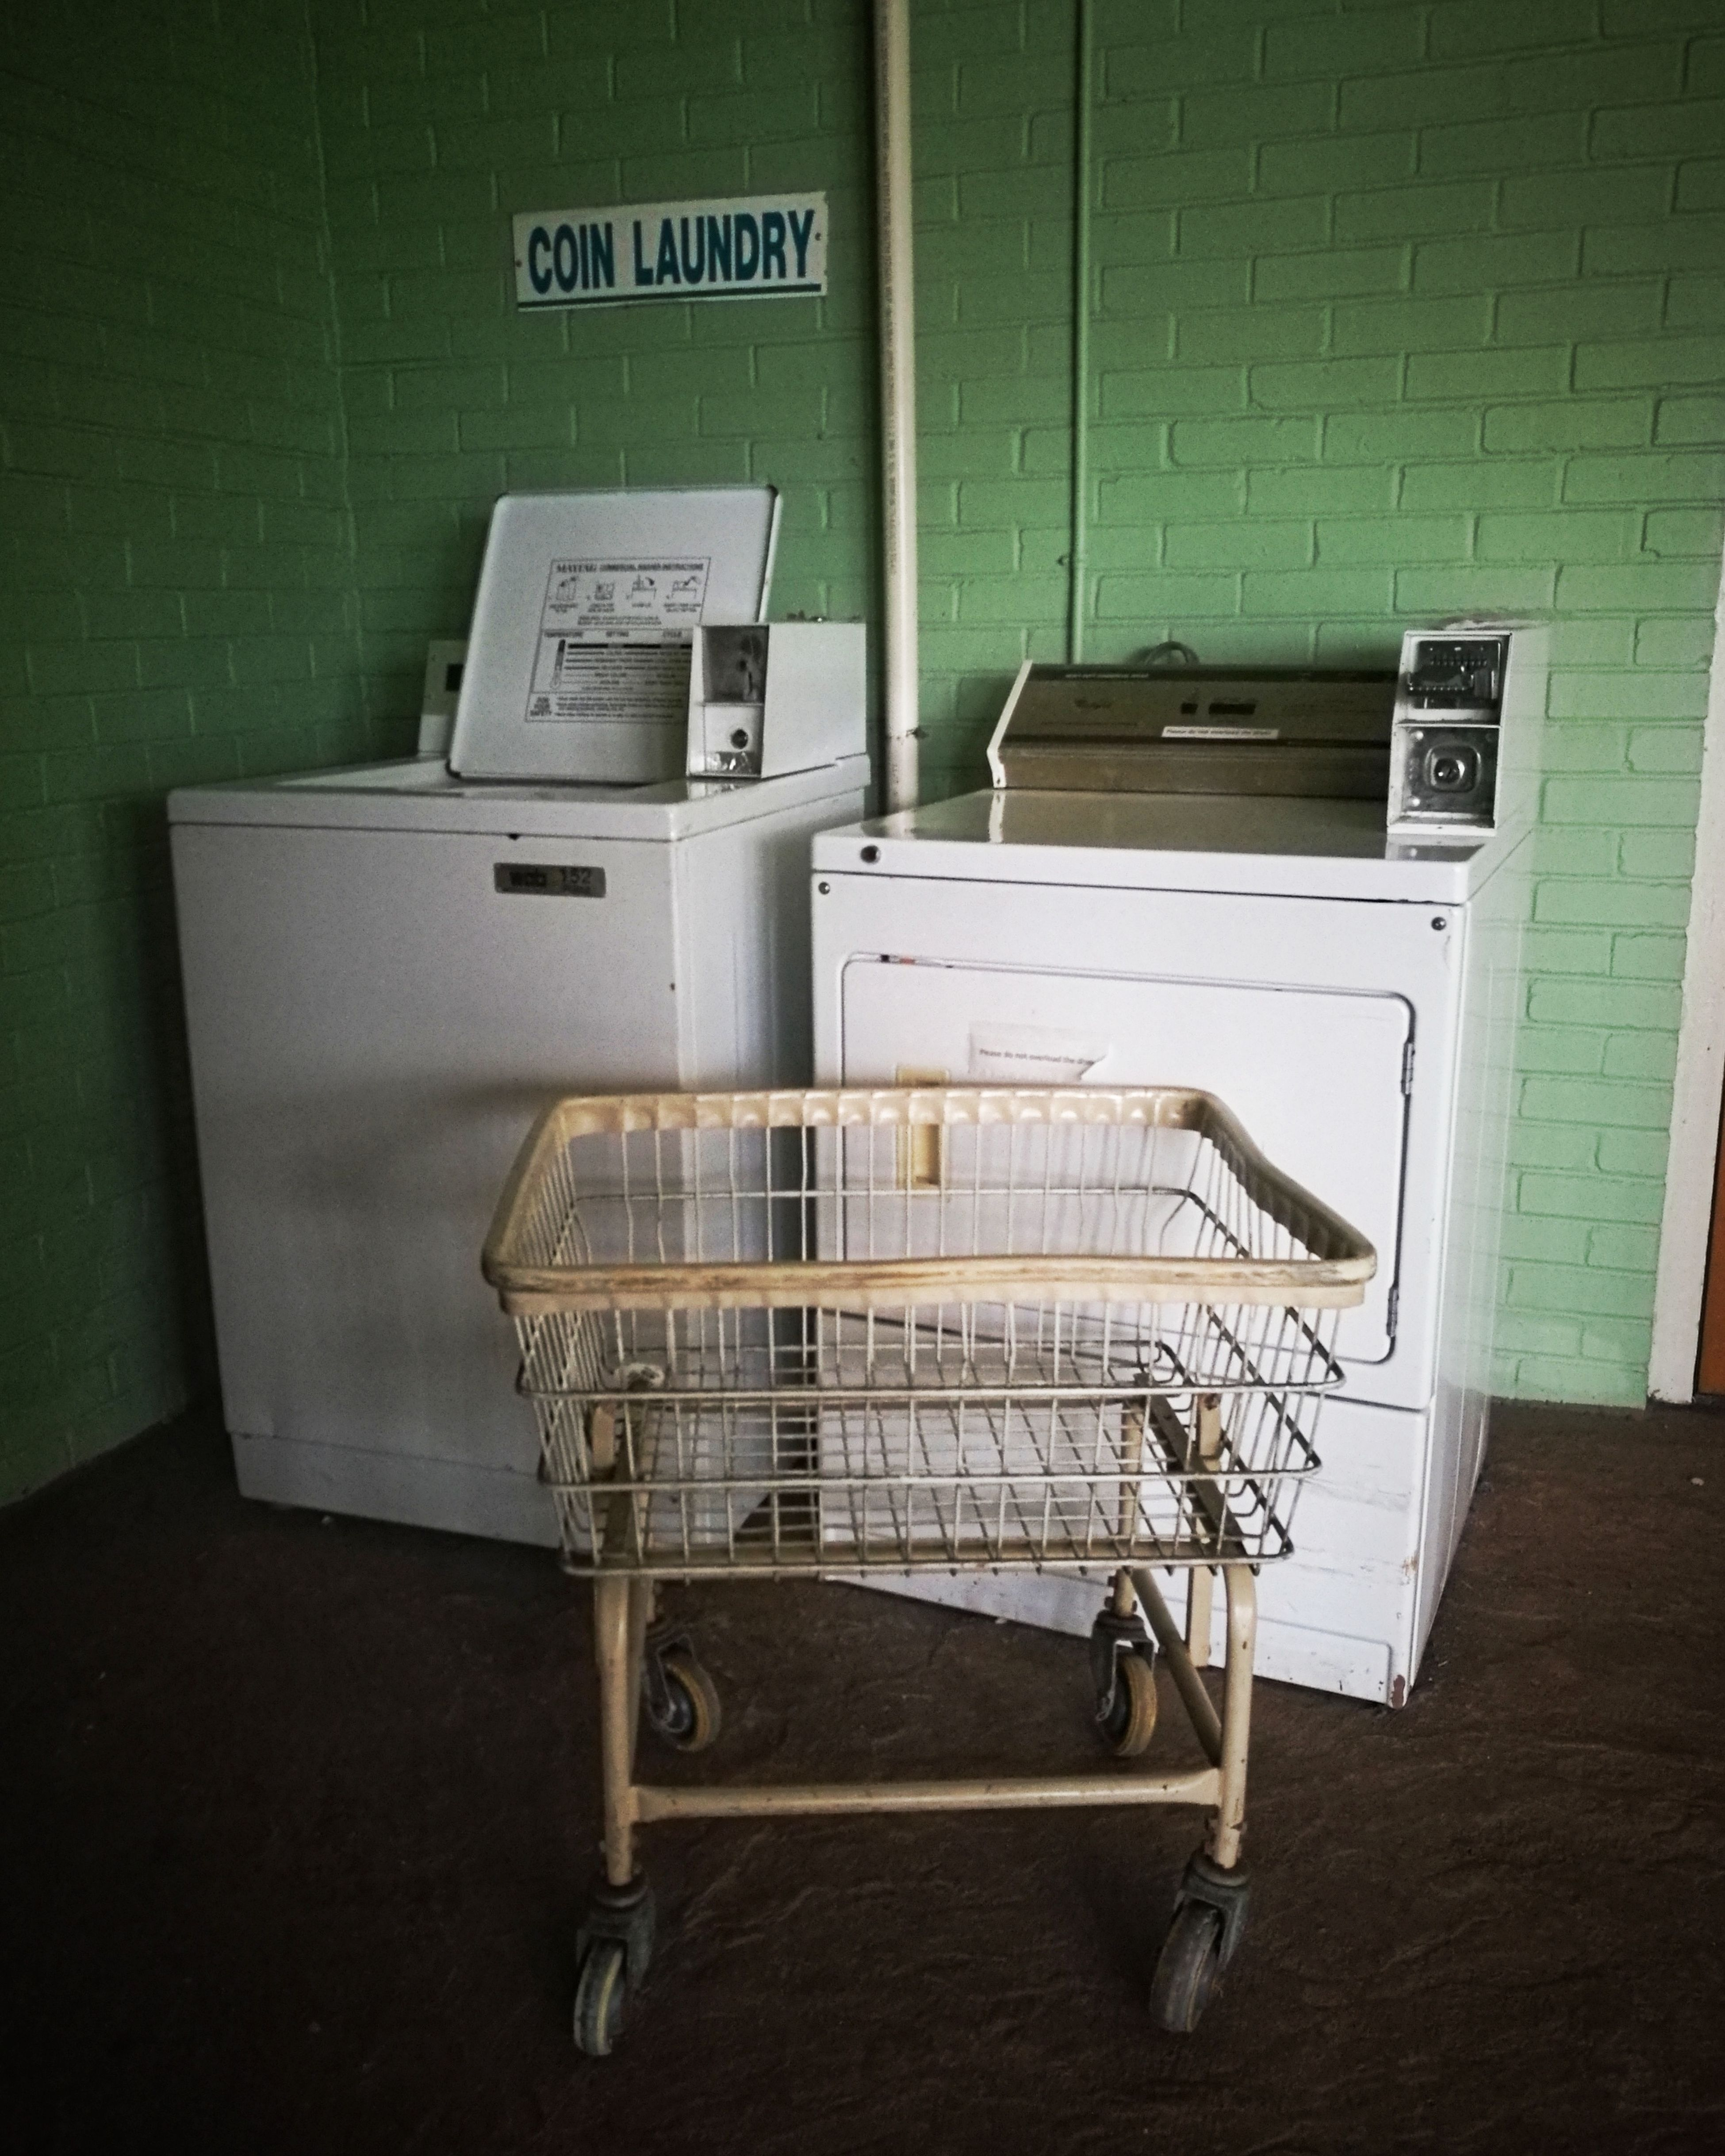 Love urban corners Shopping Cart No People Indoors  Day Urbanphotography Urban Corners Laundry Washmachine